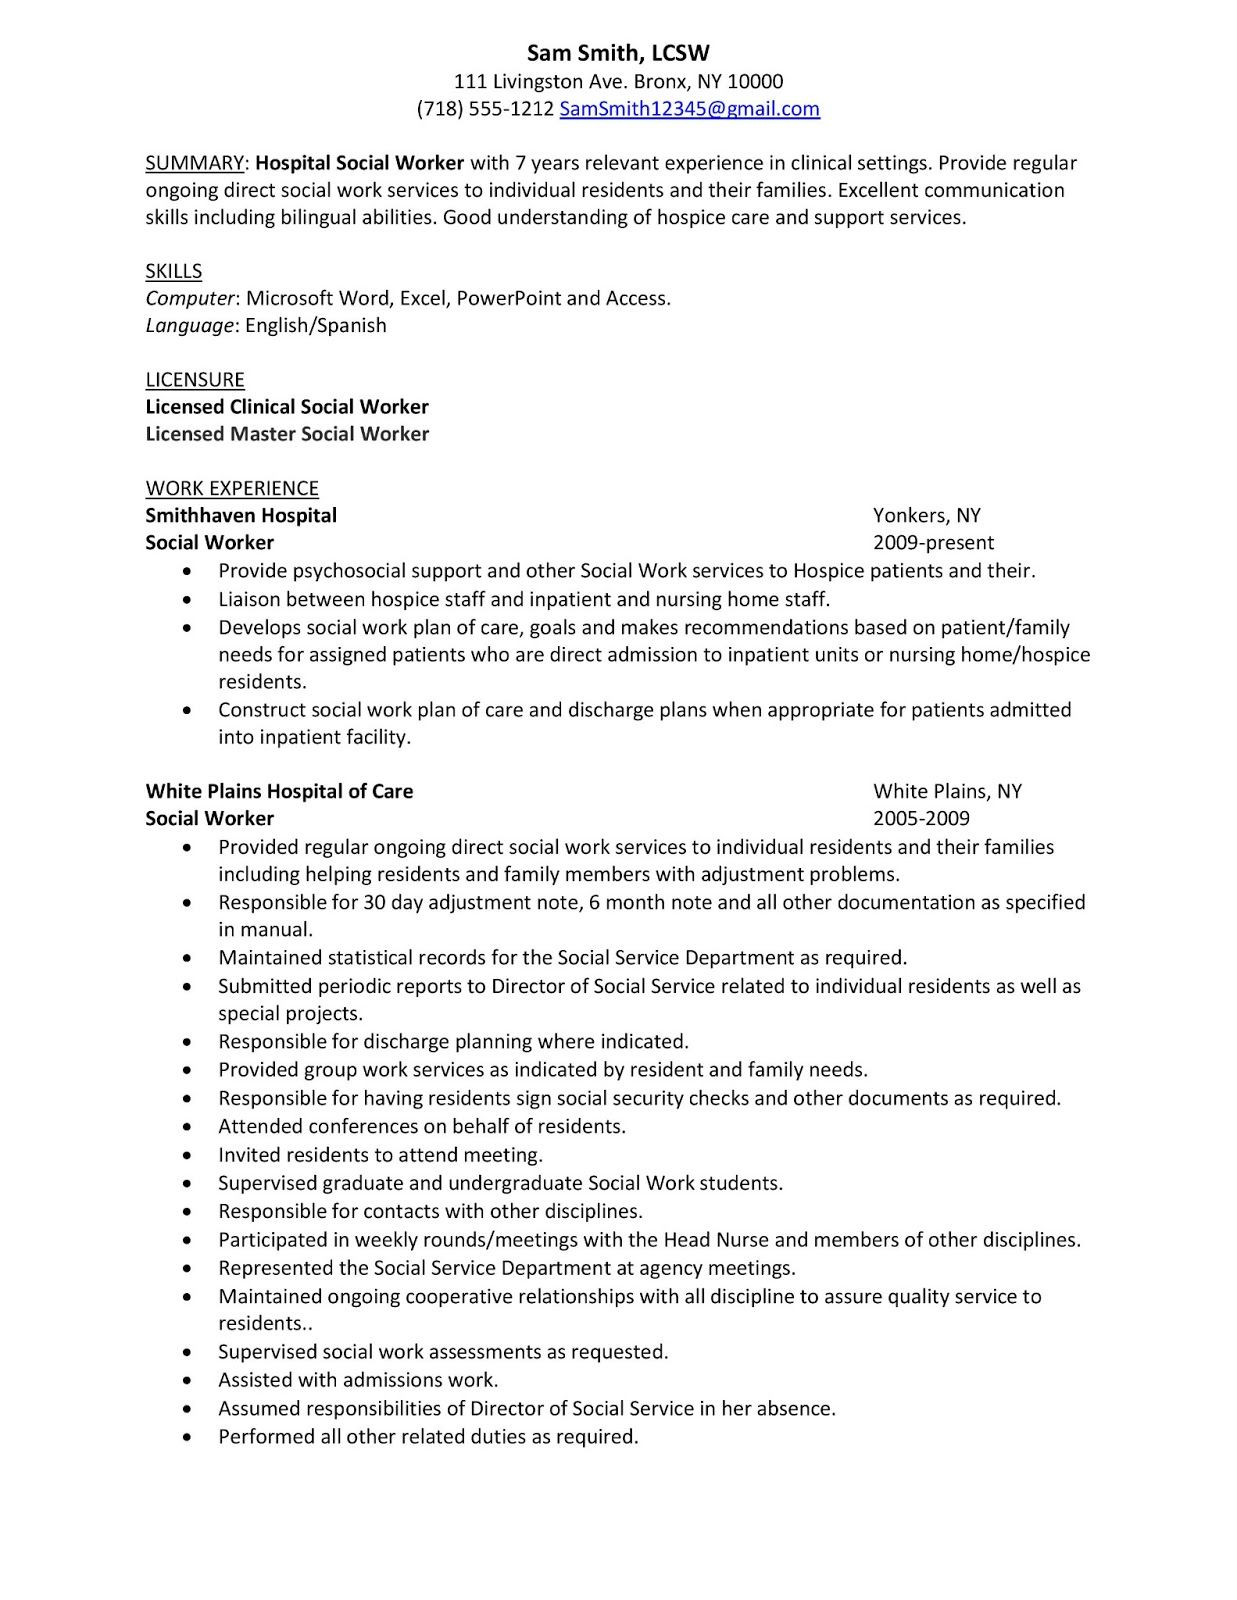 Sample Social Work Resume Examples Resume summary